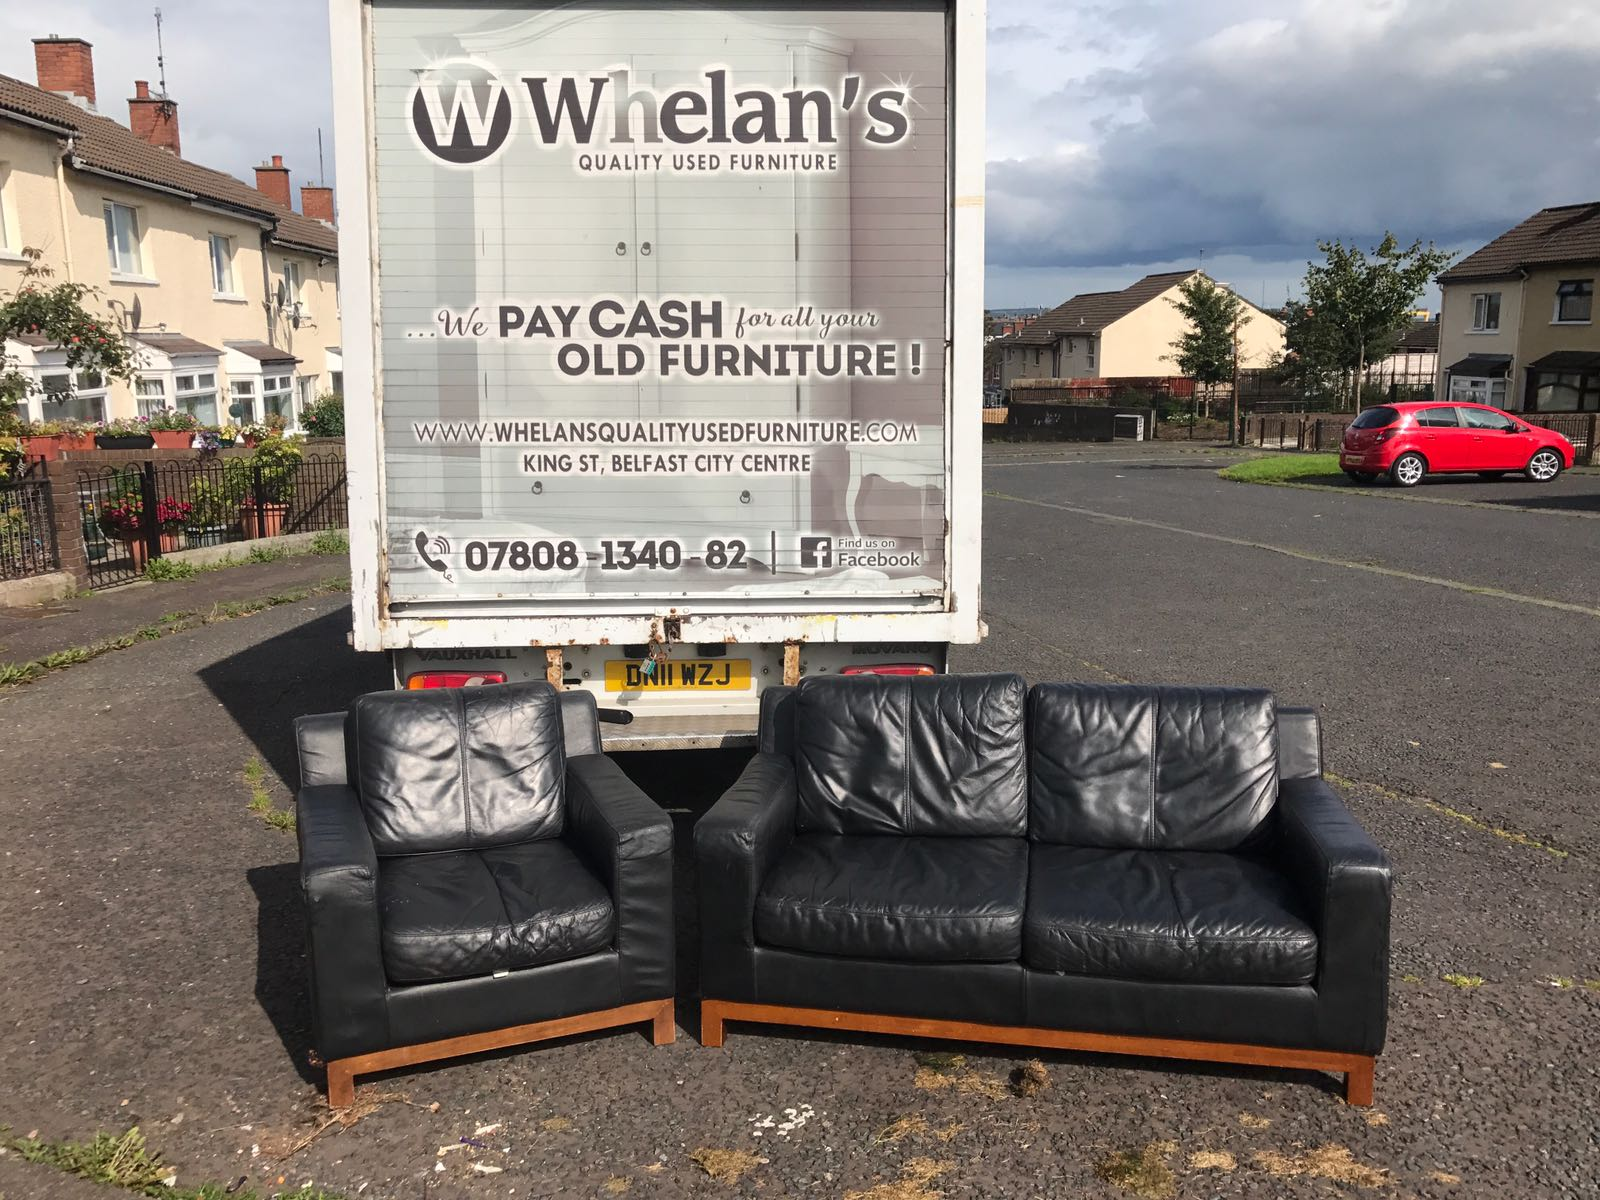 2 Seater Sofa And Armchair With Wooden Trim And Feet Whelans Quality Used Furniture